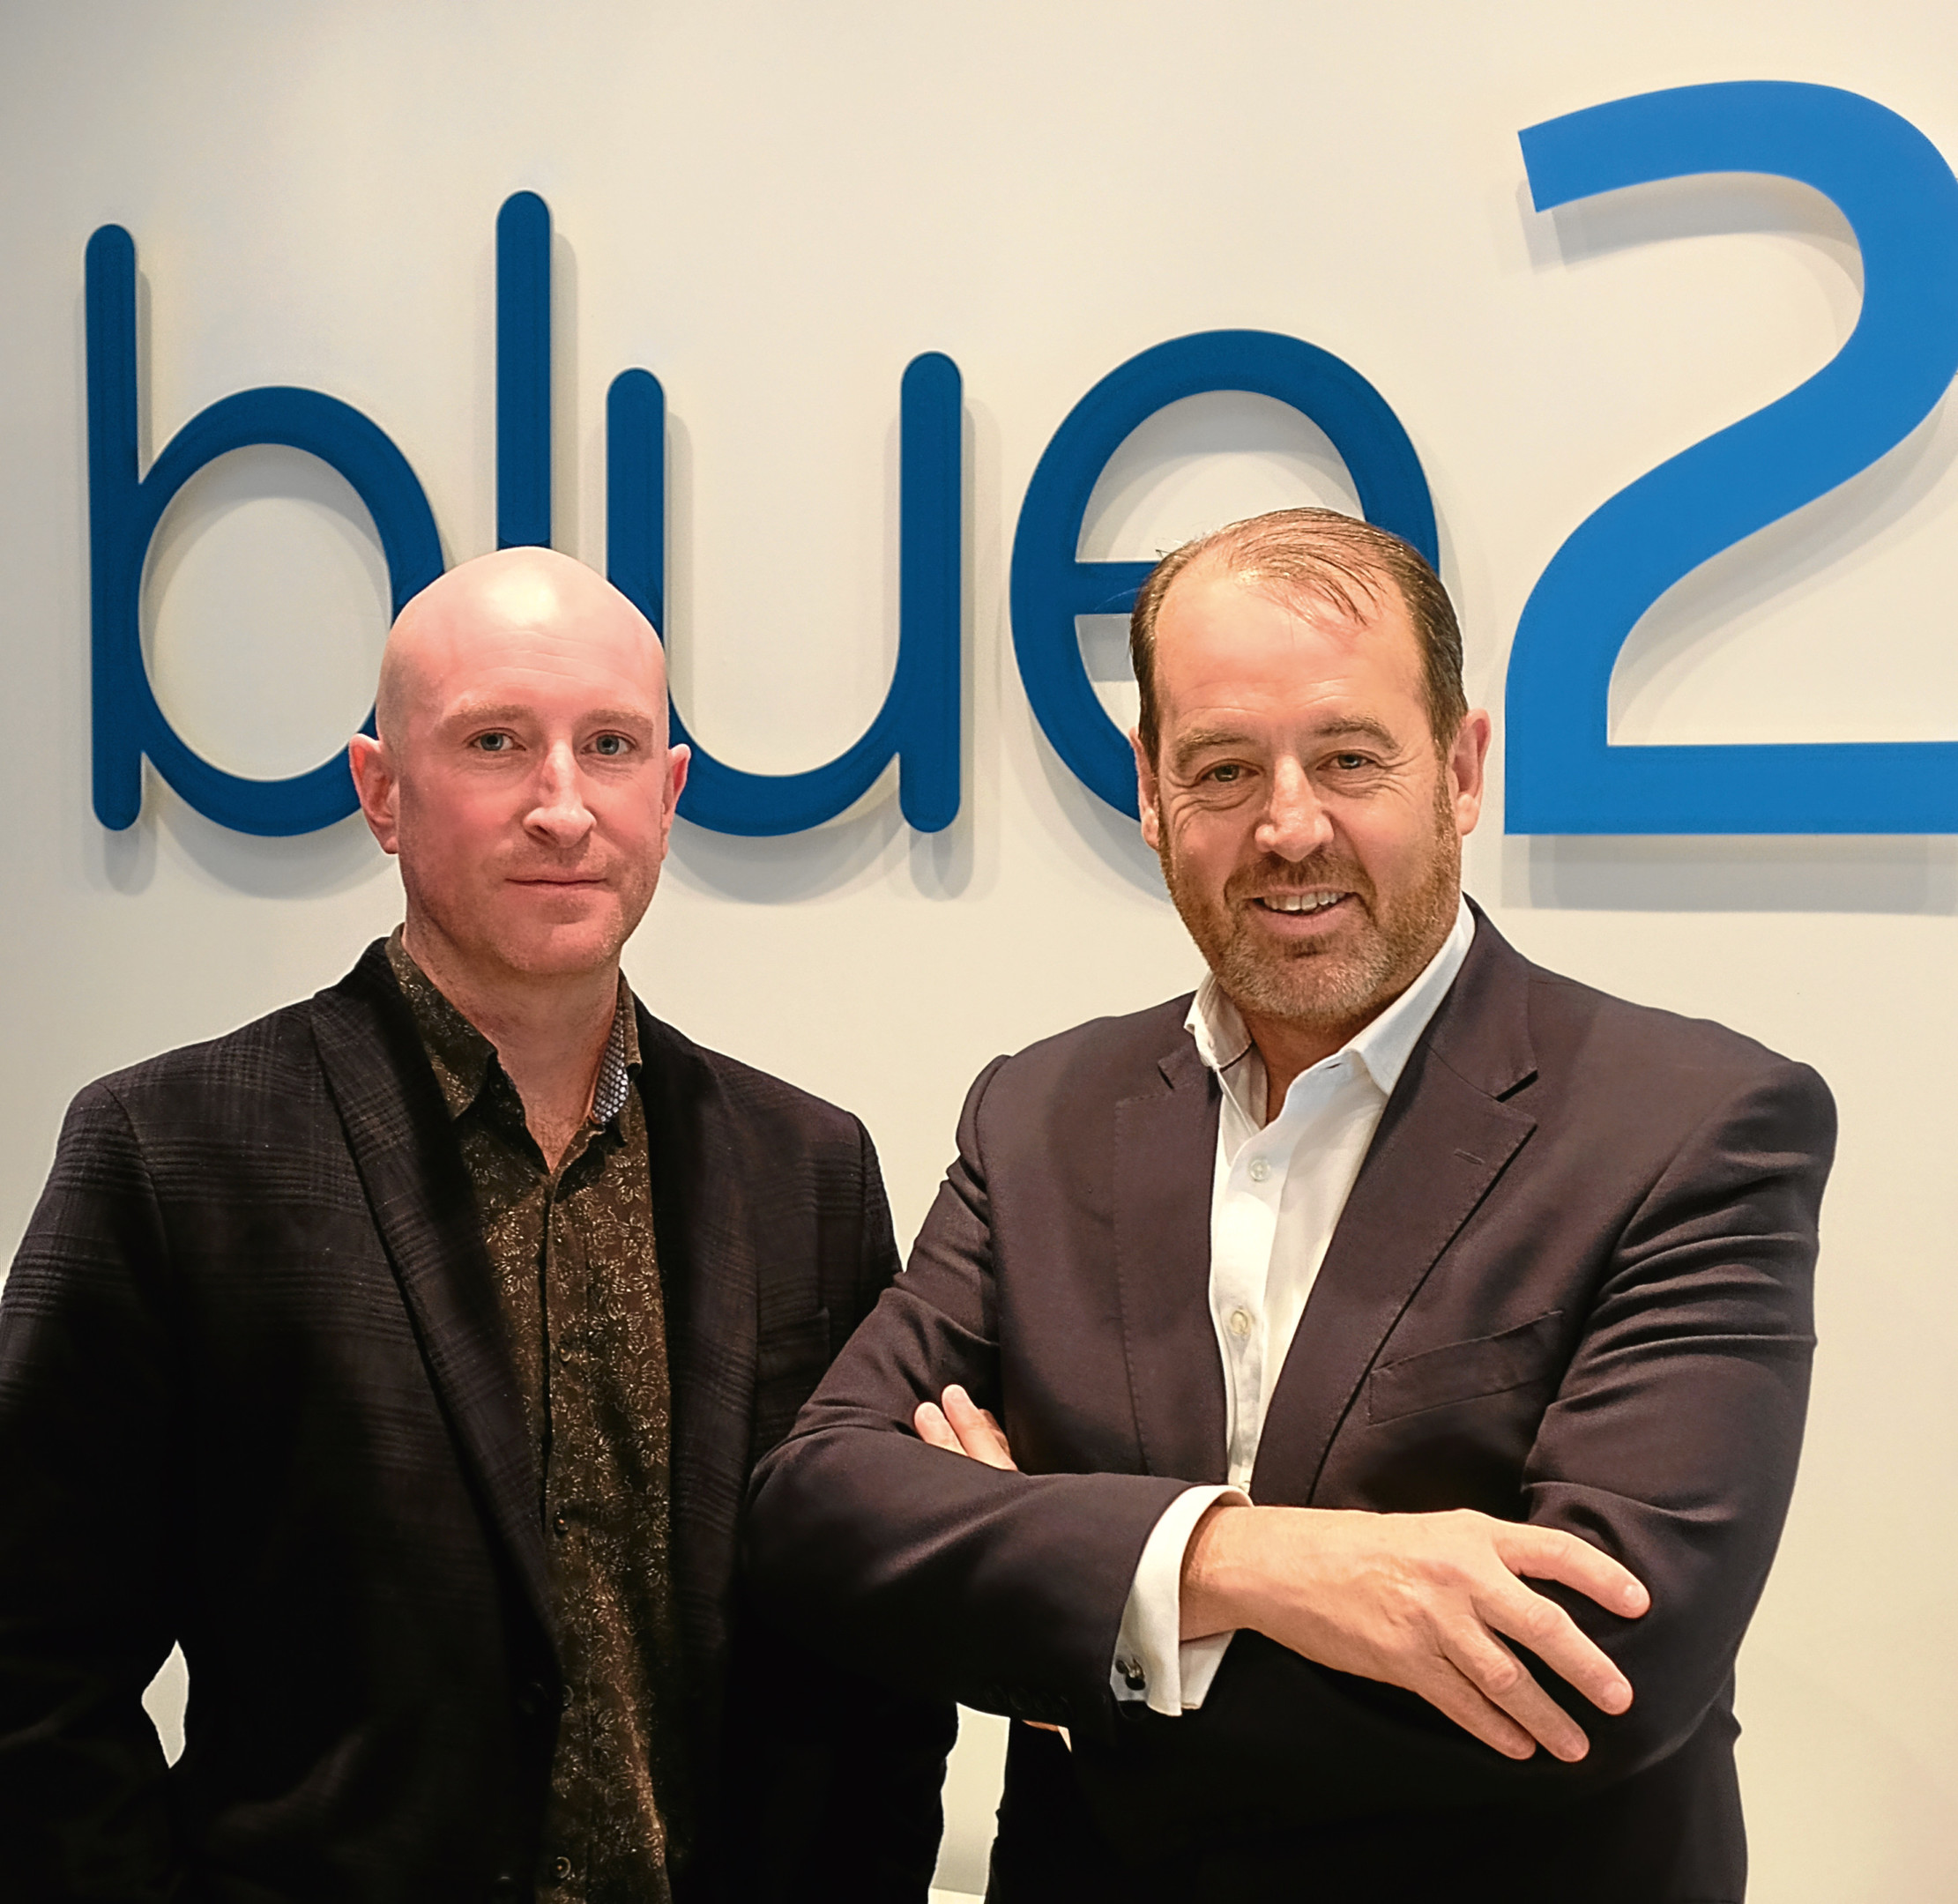 Chris Gilchrist and Scott McCallum at the Blue2 Digital offices in Broughty Ferry